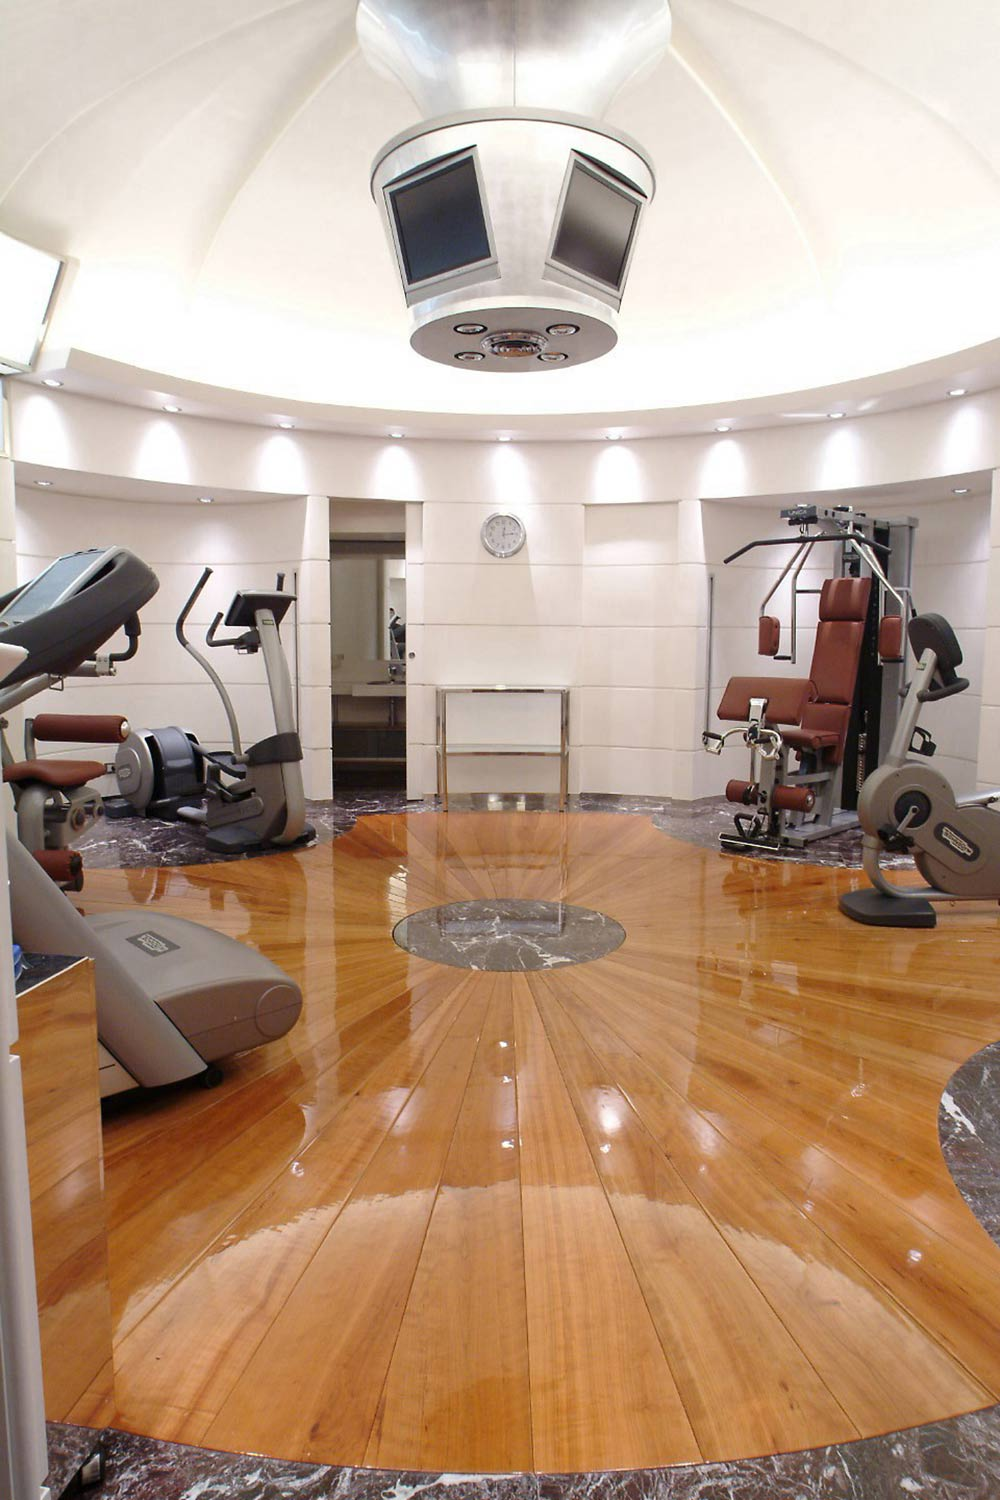 Fitness Center at Hotel Majestic Roma, Italy